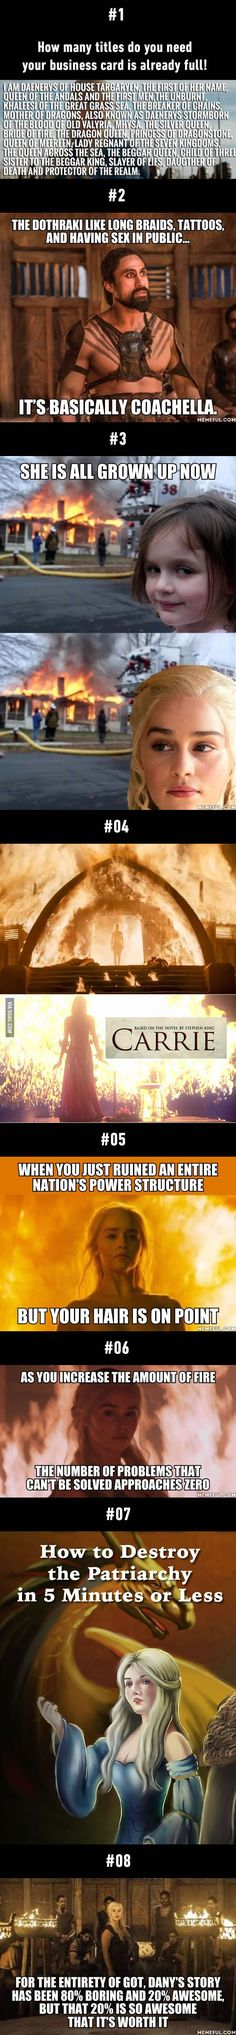 How Internet Reacts To The Unburnt Of Episode 4 Of 'Game Of Thrones'